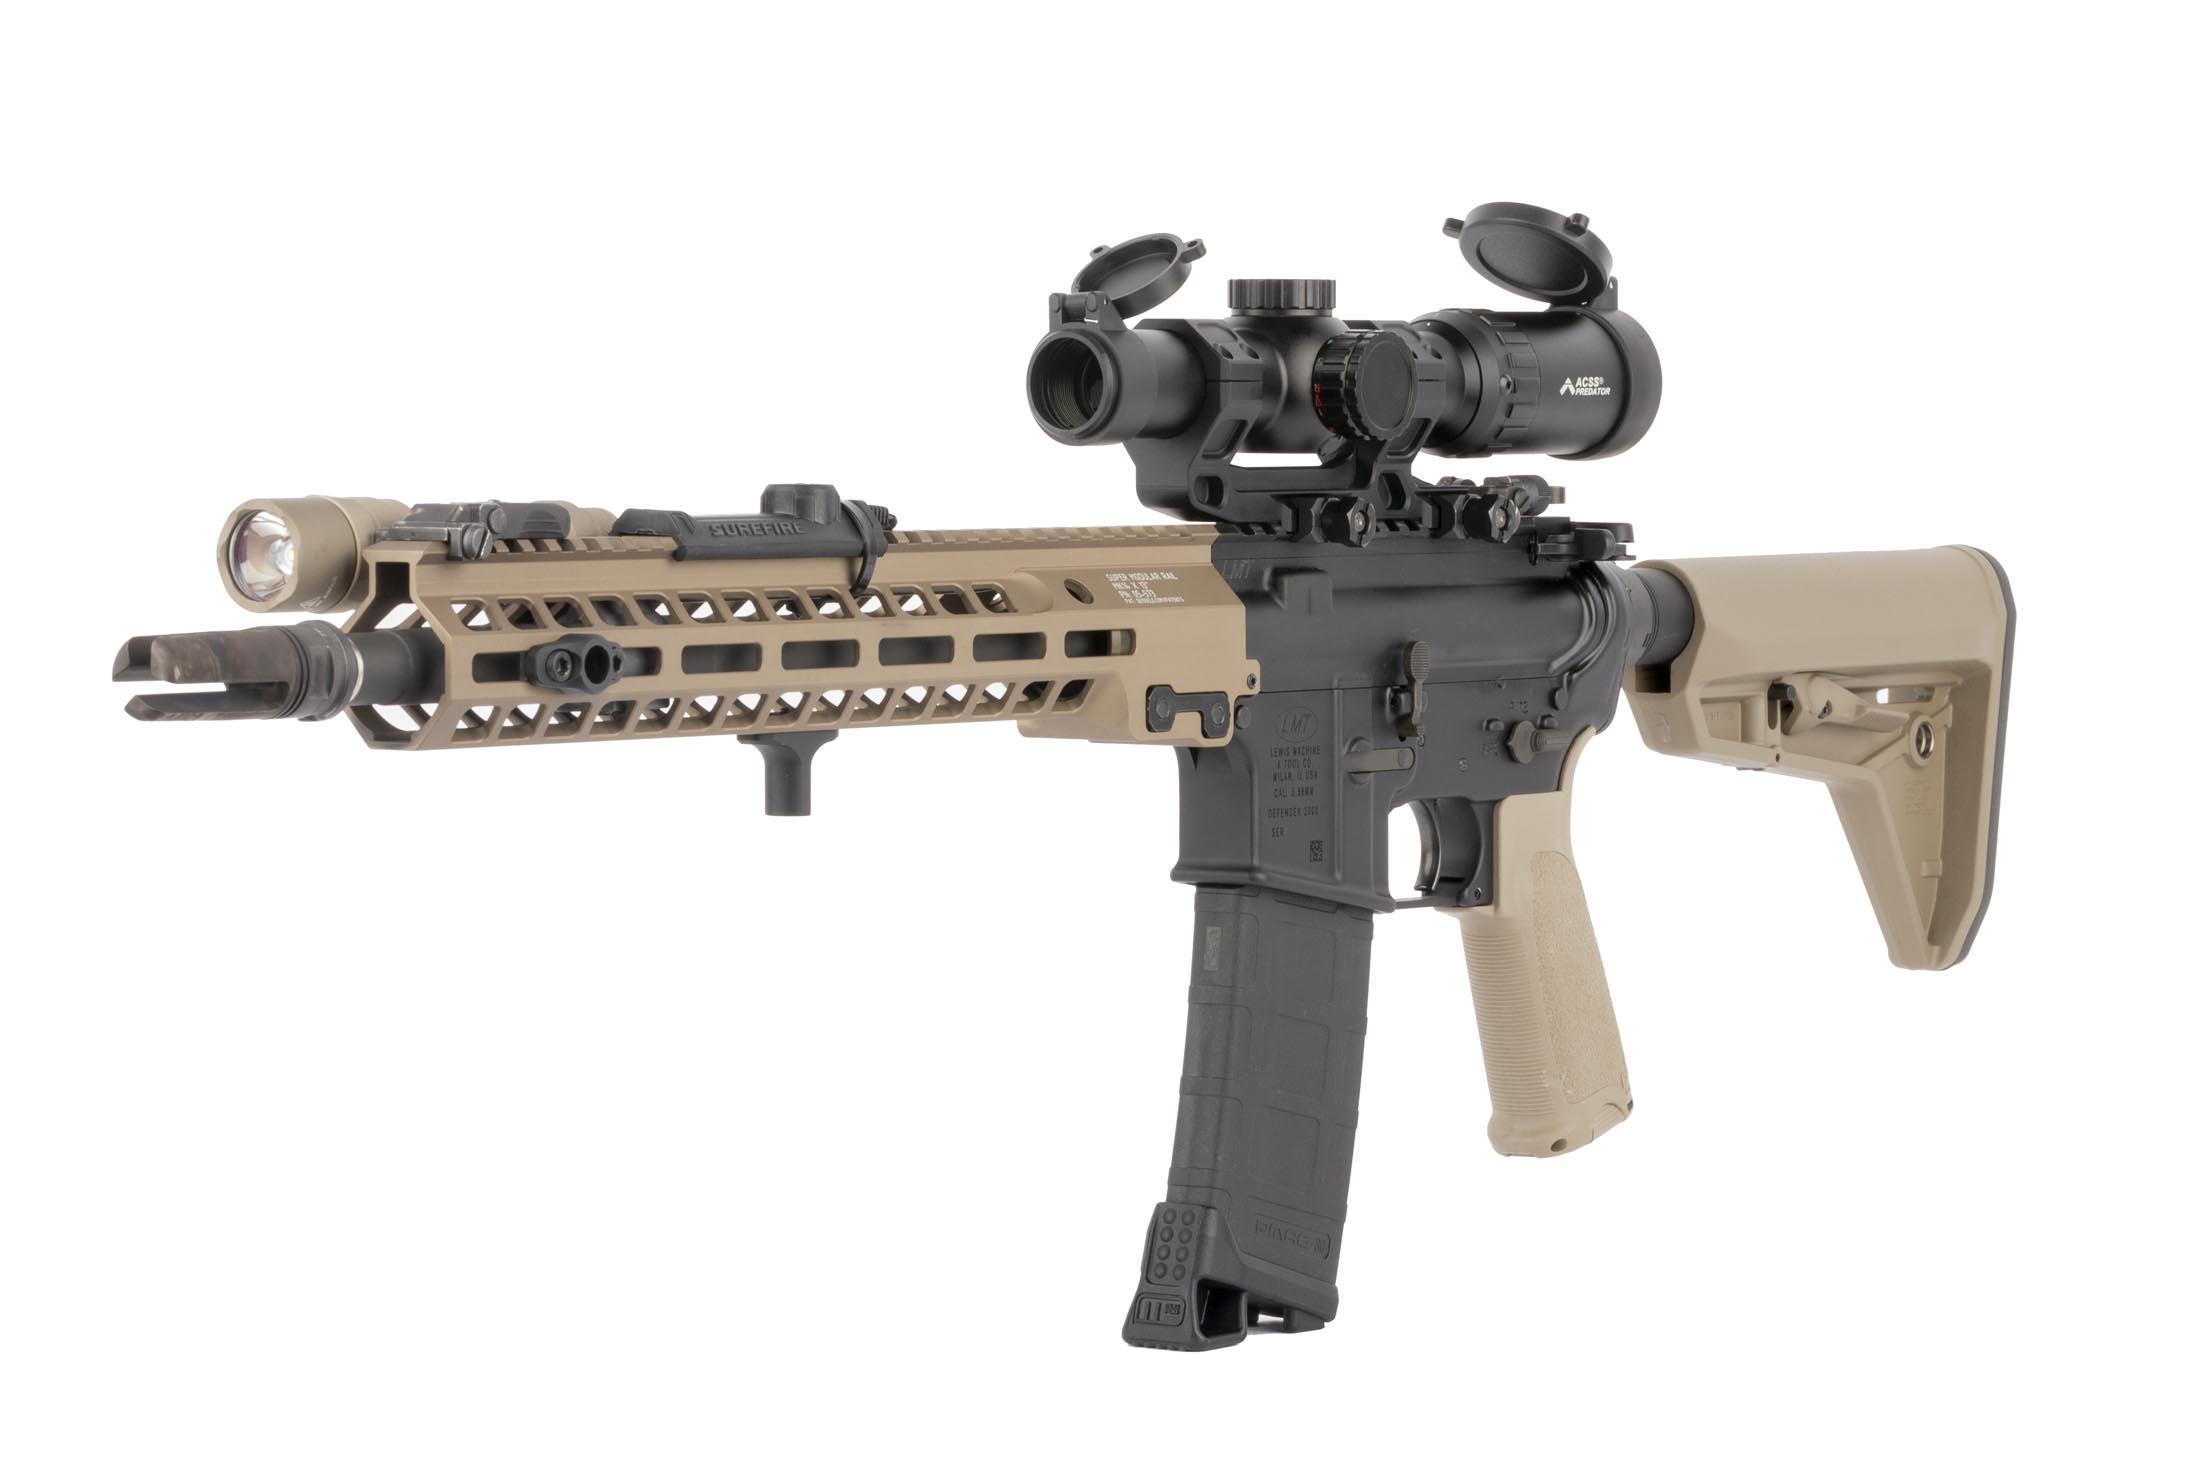 Primary Arms 1-6x rear focal plane rifle scope with ACSS Predator rifle scope mounted to an LMT AR-15 carbine